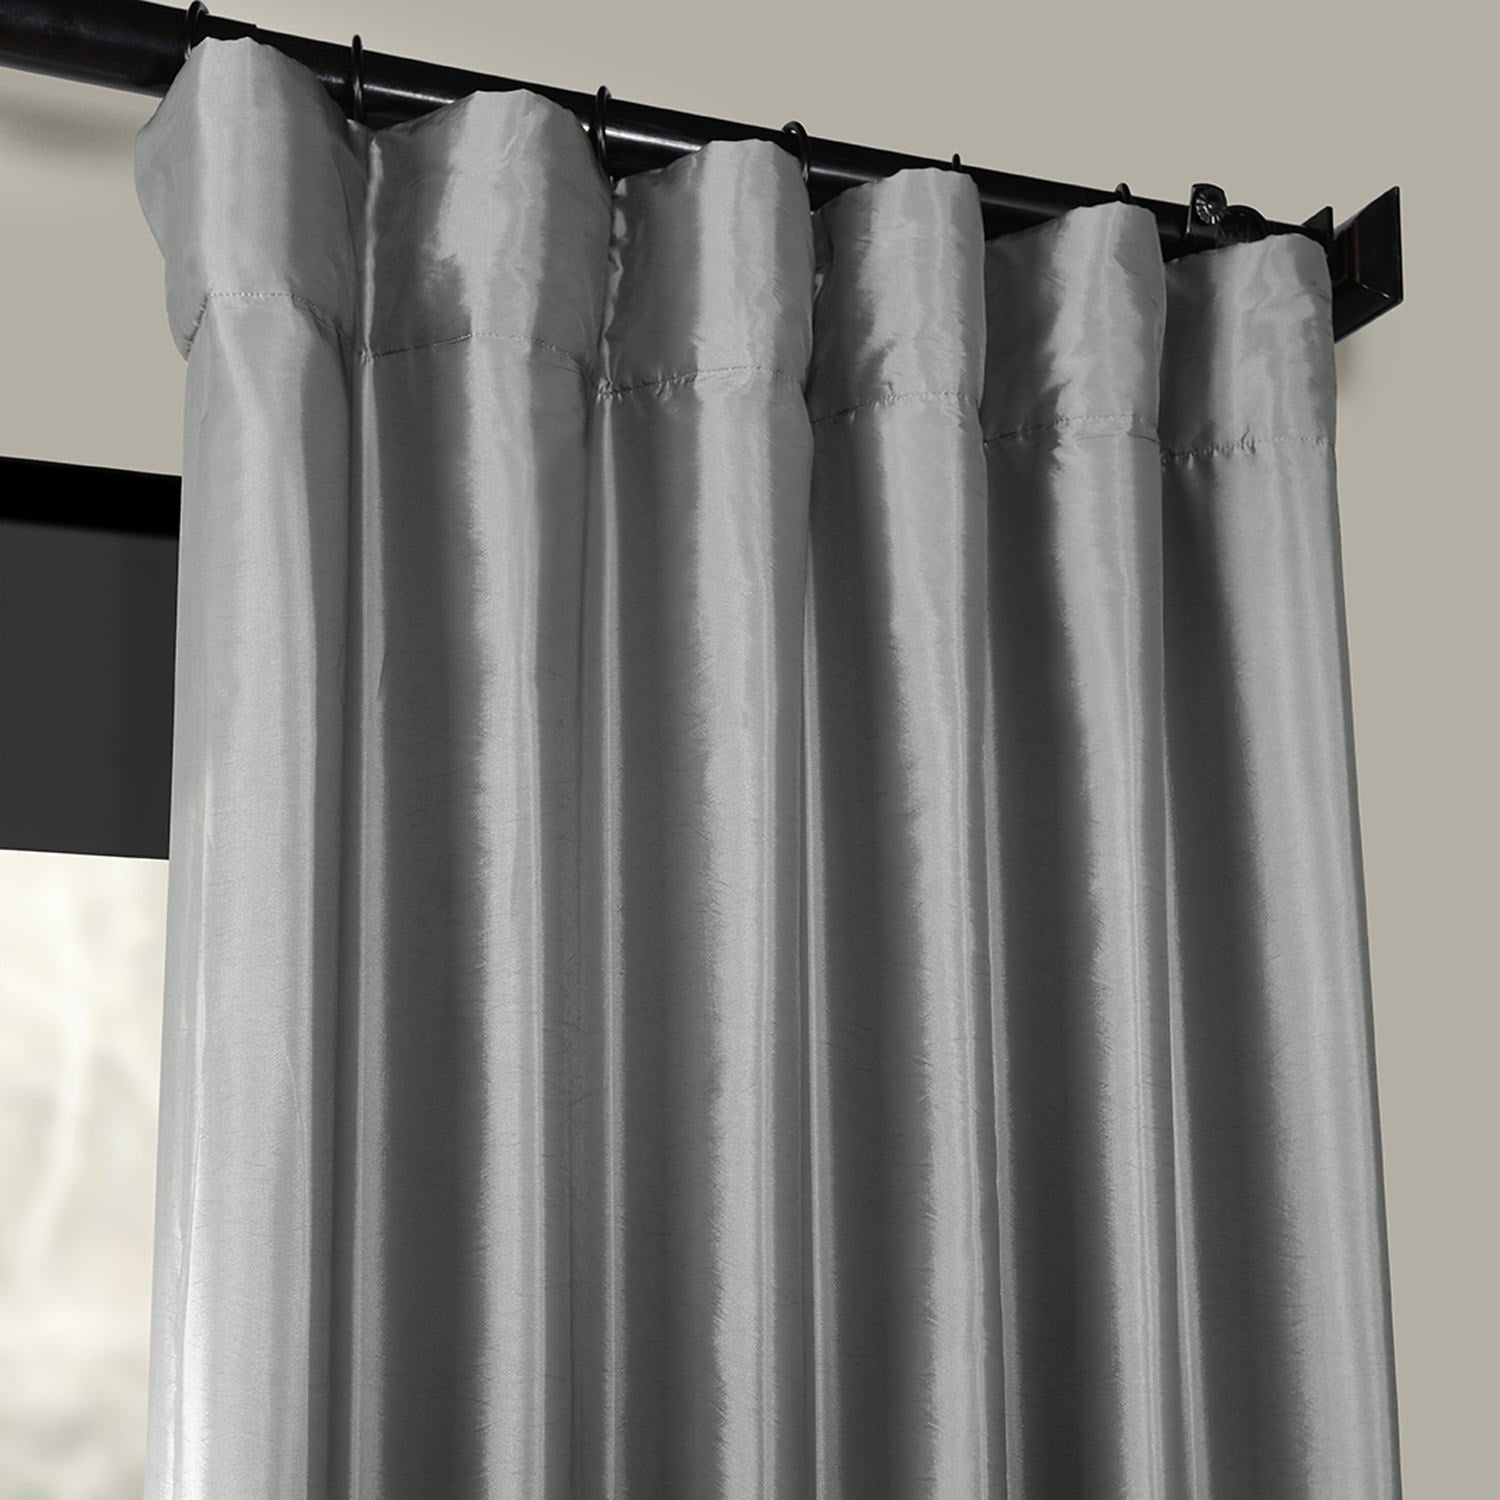 Exclusive Fabrics Solid Faux Silk Taffeta Platinum Single Curtain Panel For Solid Faux Silk Taffeta Graphite Single Curtain Panels (View 13 of 30)